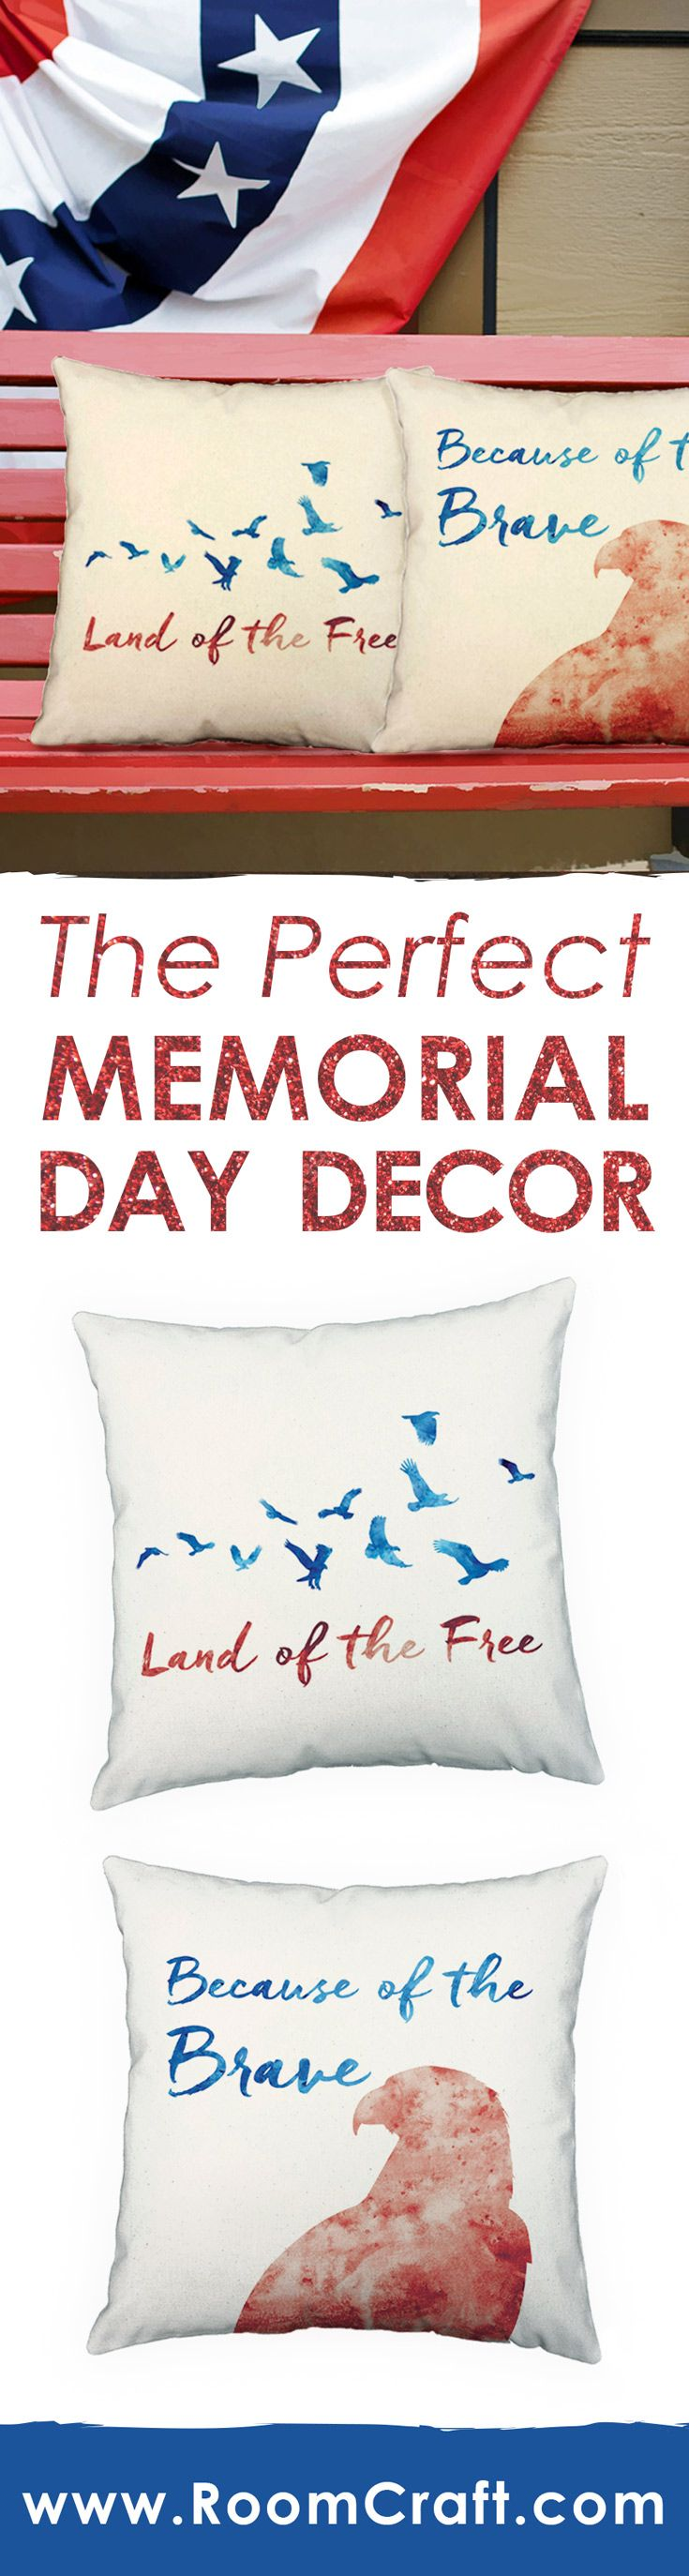 Looking for the perfect Memorial Day decor? Our patriotic throw pillows would work great! All of our designs are offered in multiple colors, sizes and fabrics making them perfect for any room in your home or office. Our quality pillow covers are made to order in the USA and feature 3 wooden buttons on the back for closure. Choose your favorite and create a truly unique pillow set! #roomcraft